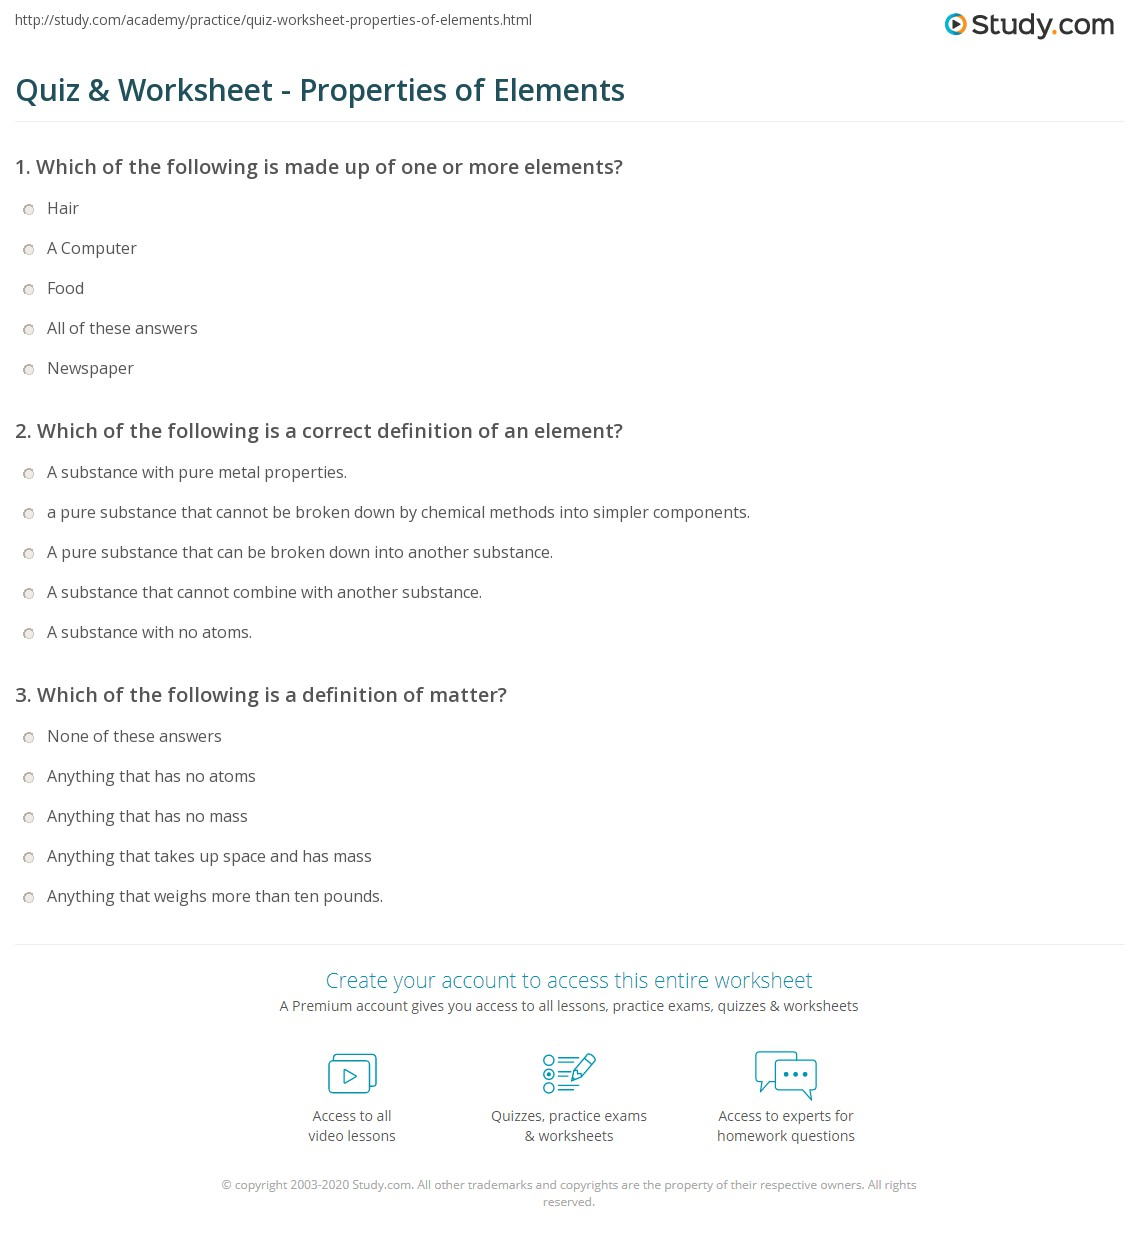 Periodic Table Symbols And Names Worksheet Gallery - Periodic ...